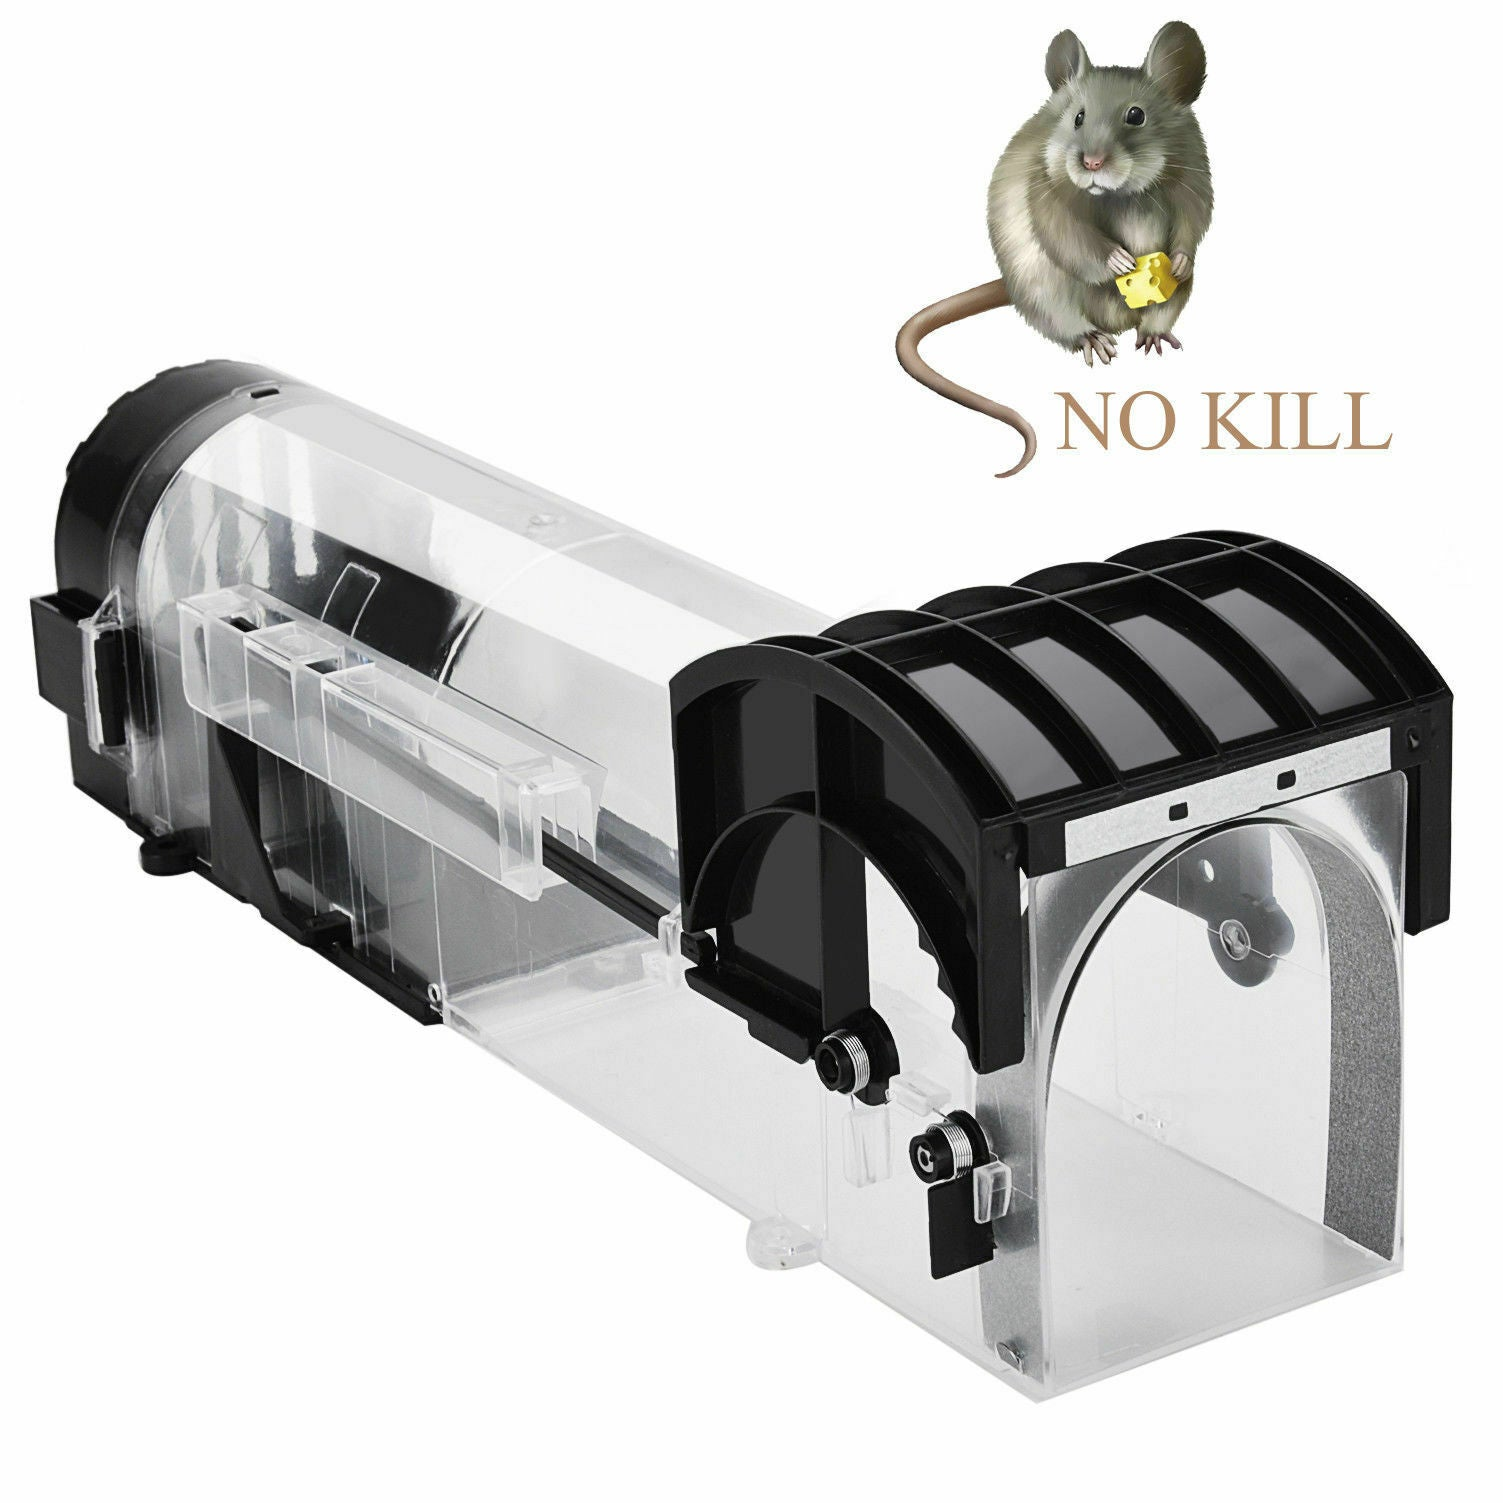 Reusable Smart Humane Mouse Trap